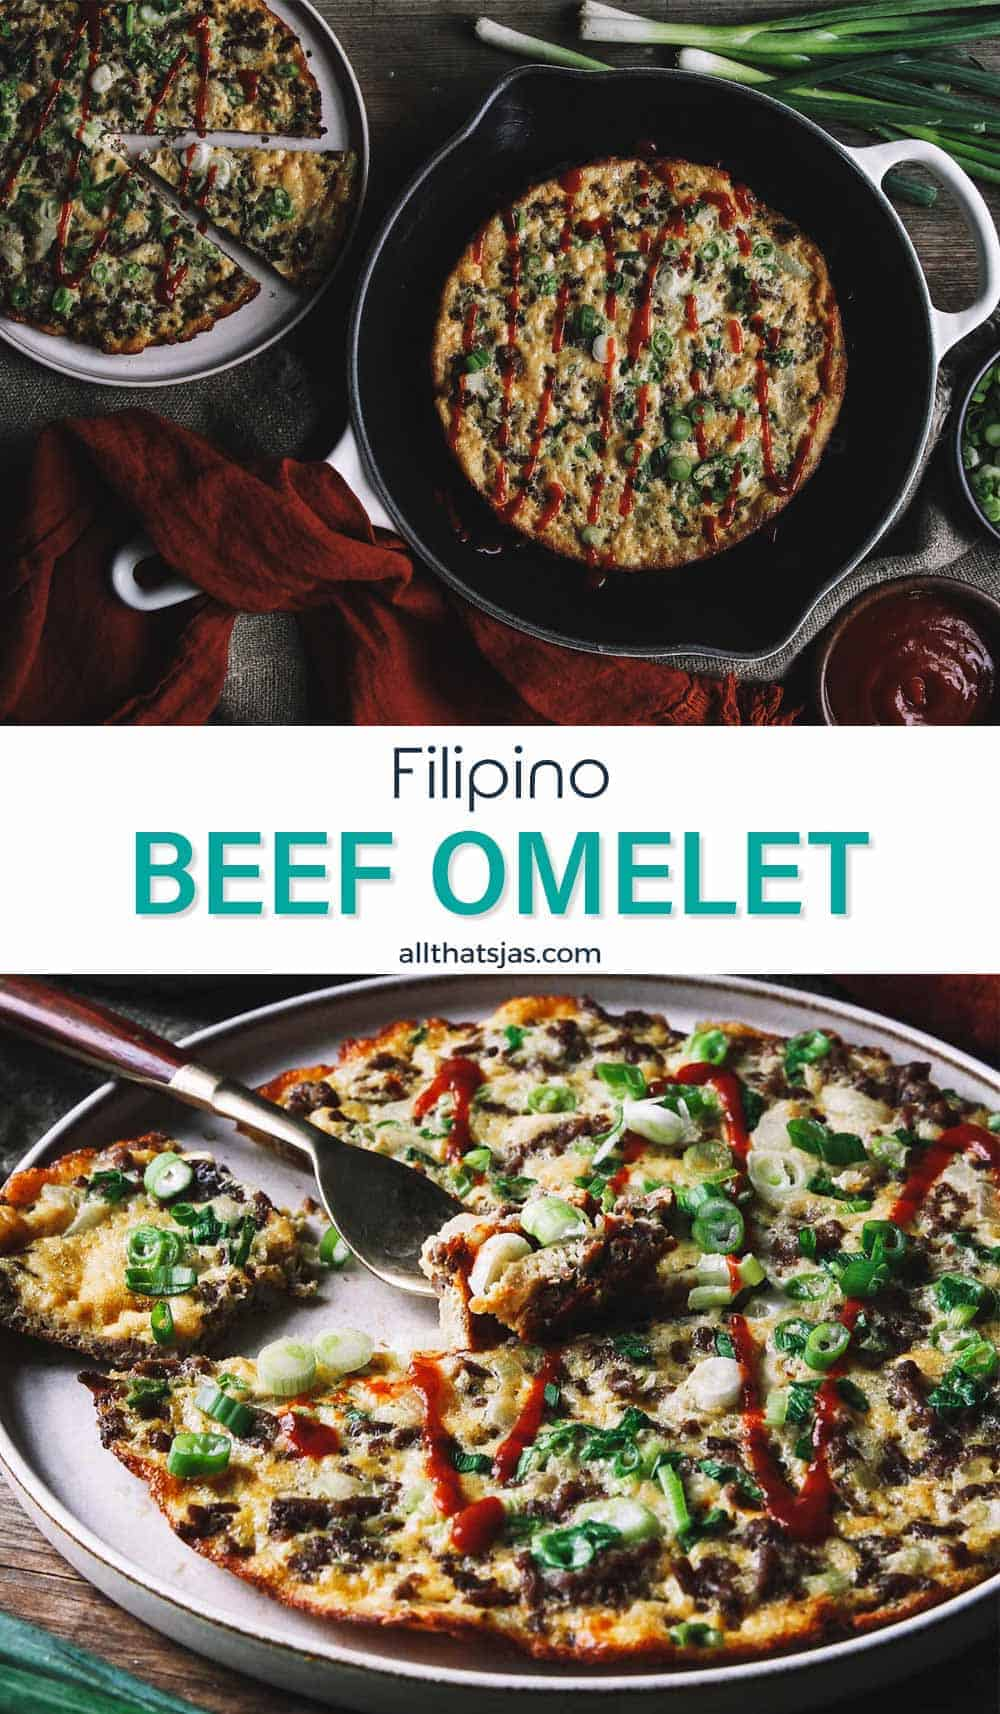 Two photo image of beef fritters and text overlay in the middle.